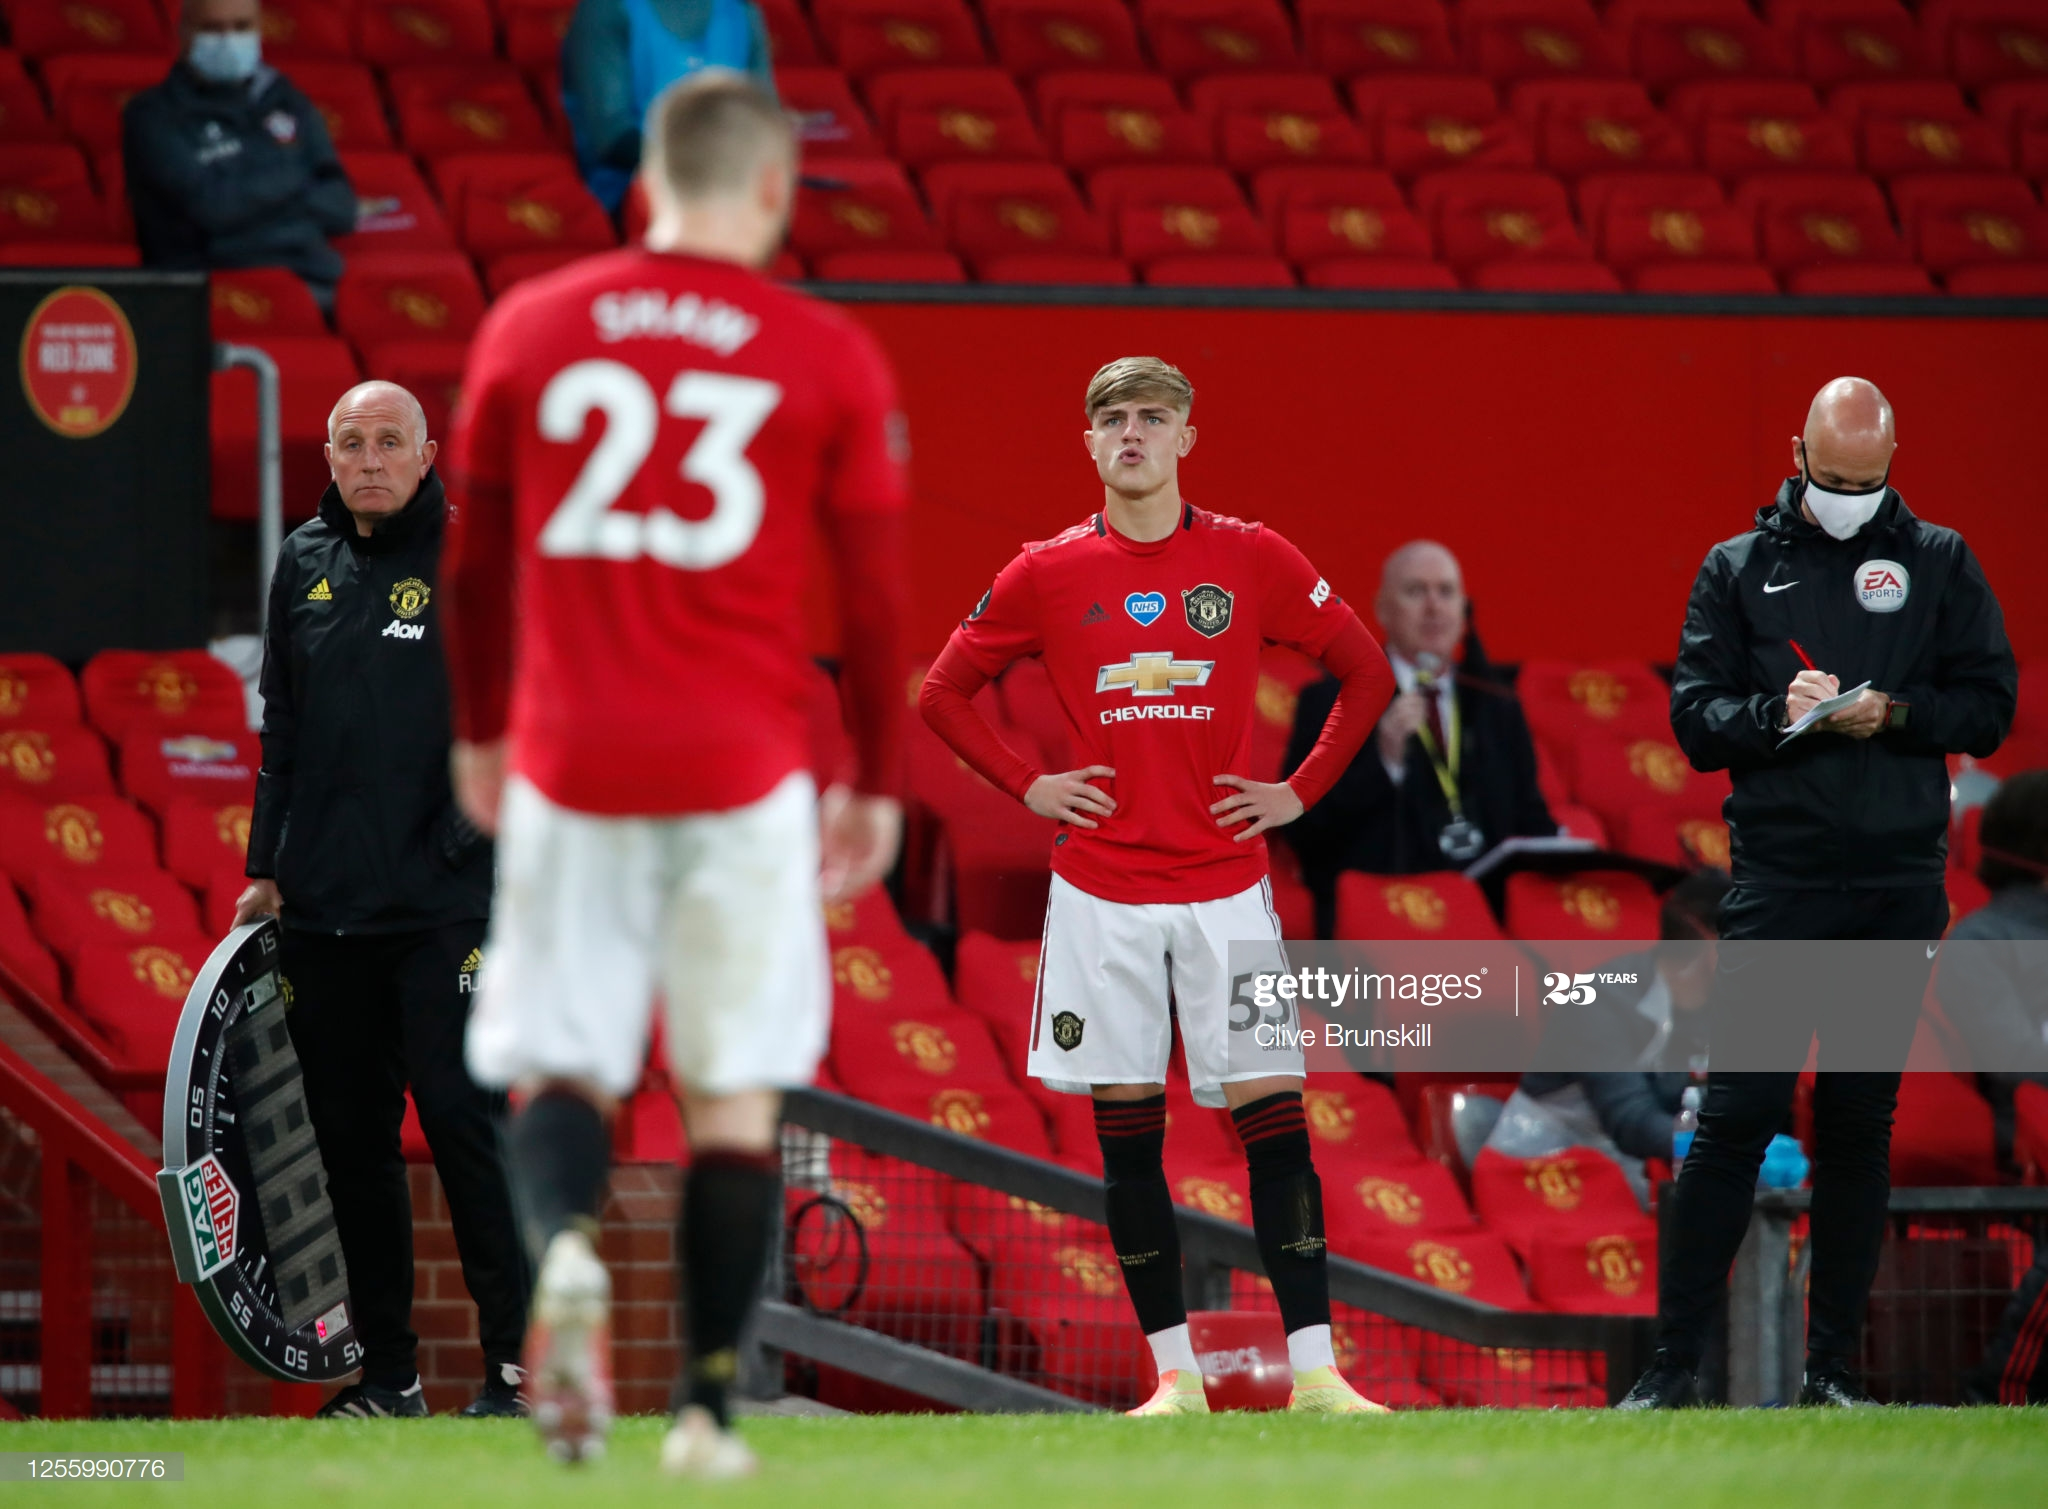 Crystal Palace vs Man United: Luke Shaw and Brandon Williams likely to miss thursday game